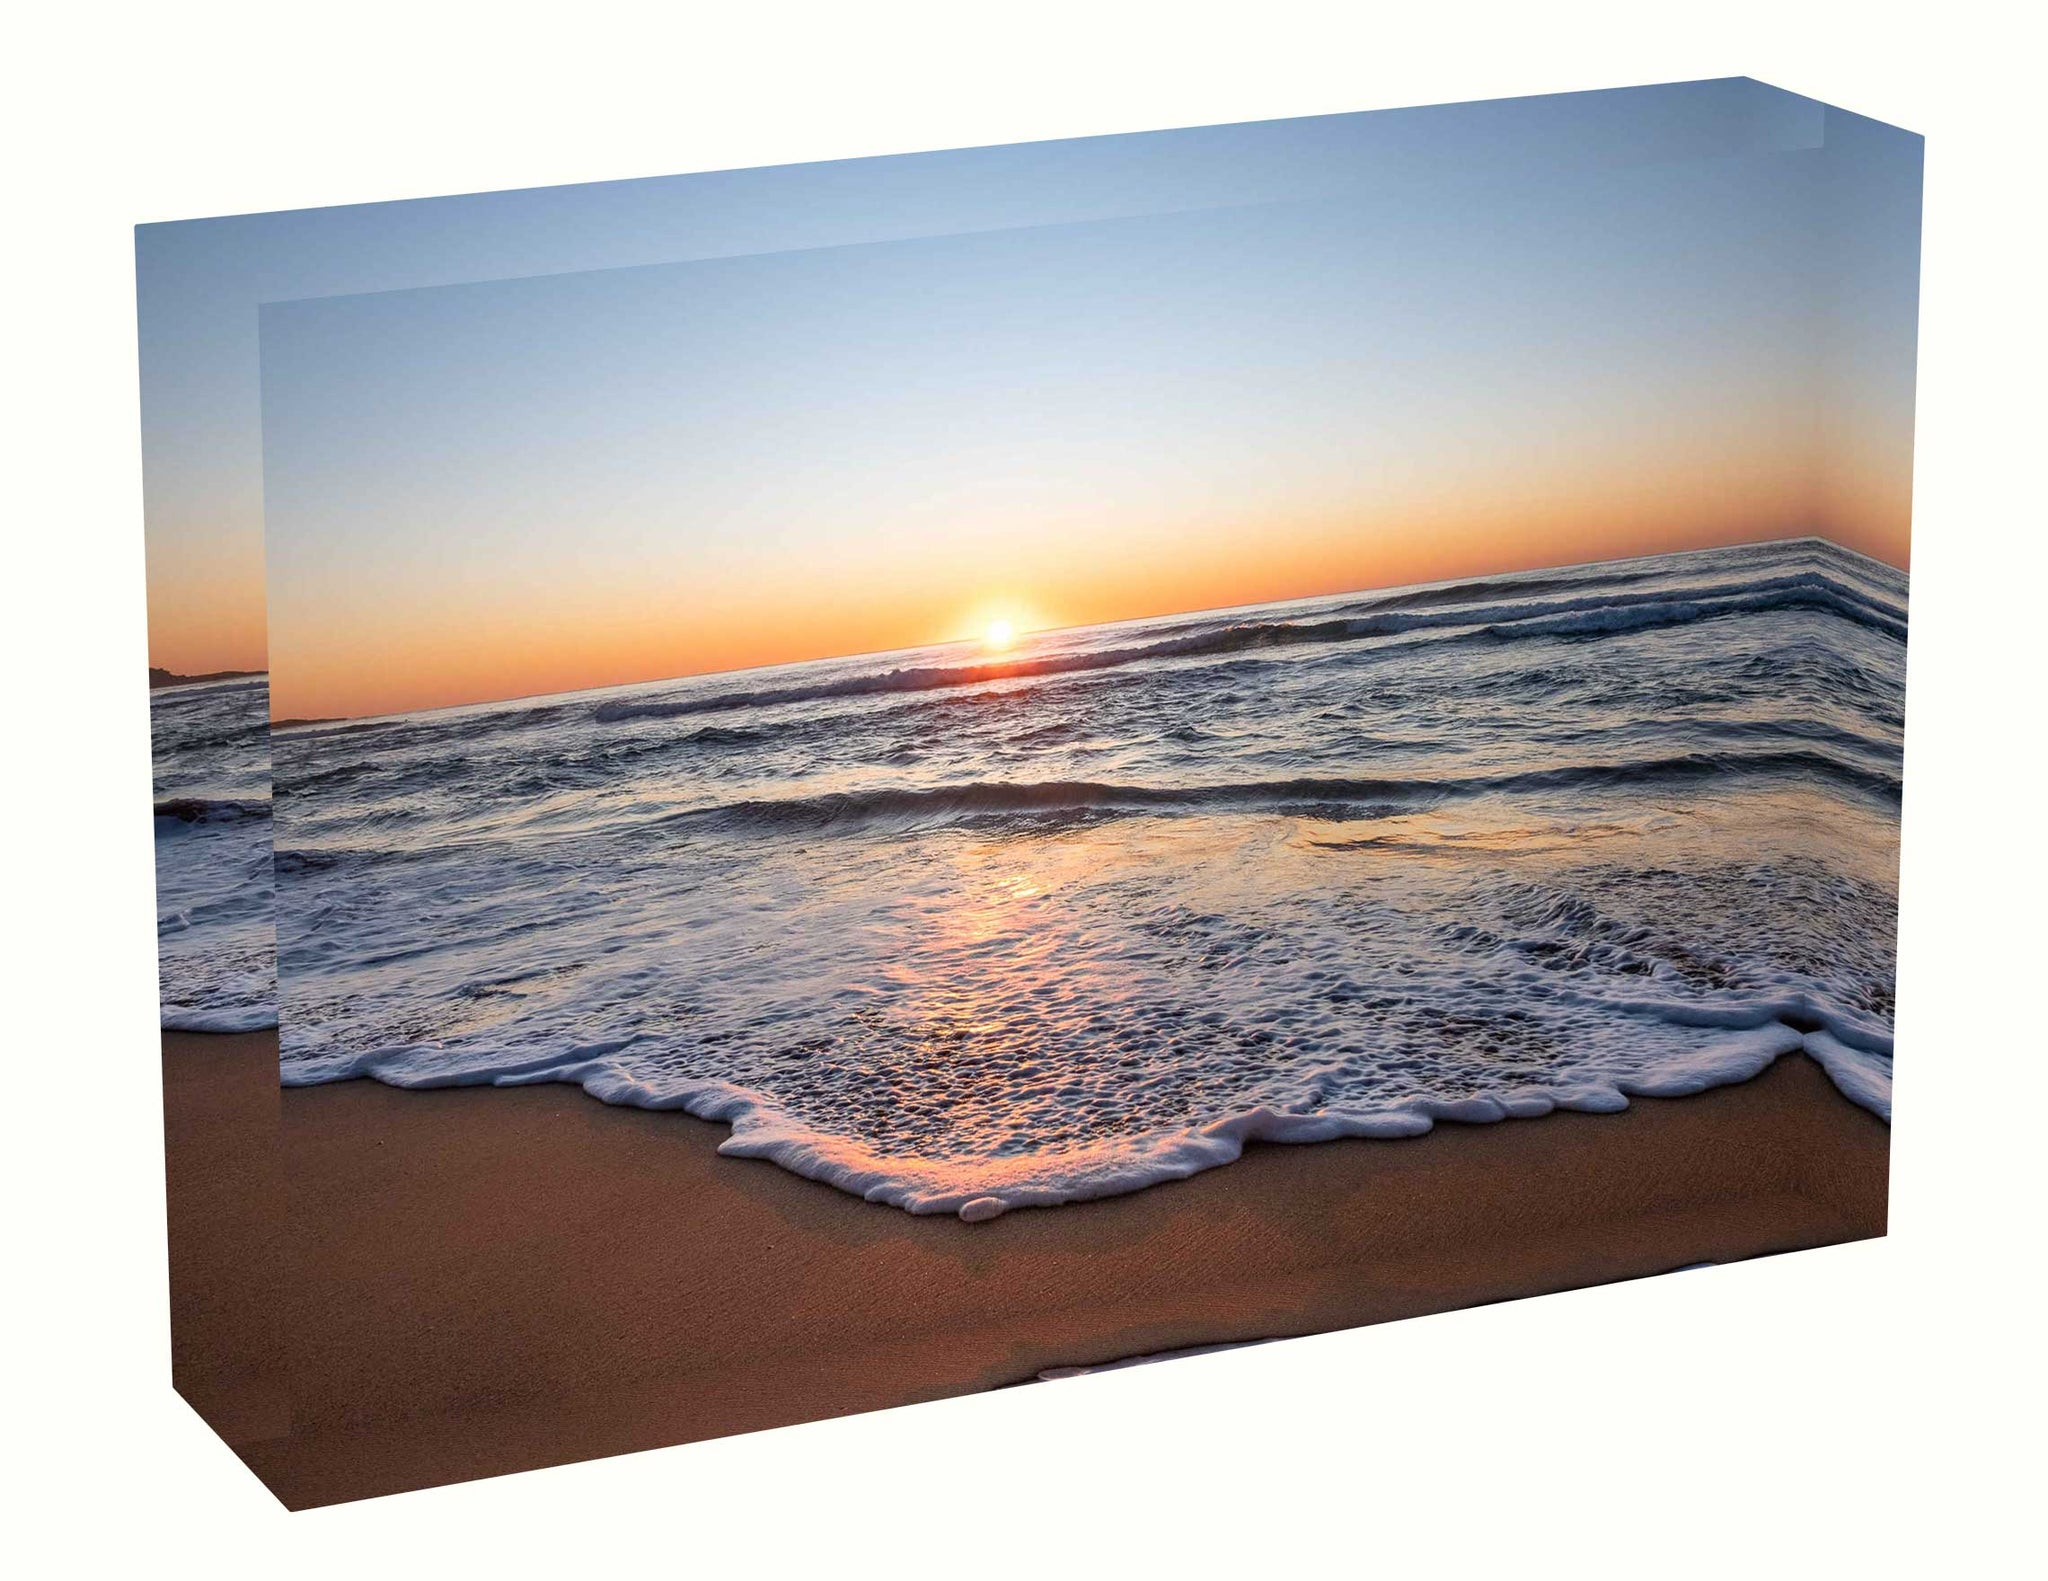 Acrylic block Sunrise photo from the 15th June 2020 at Manly beach in Sydney